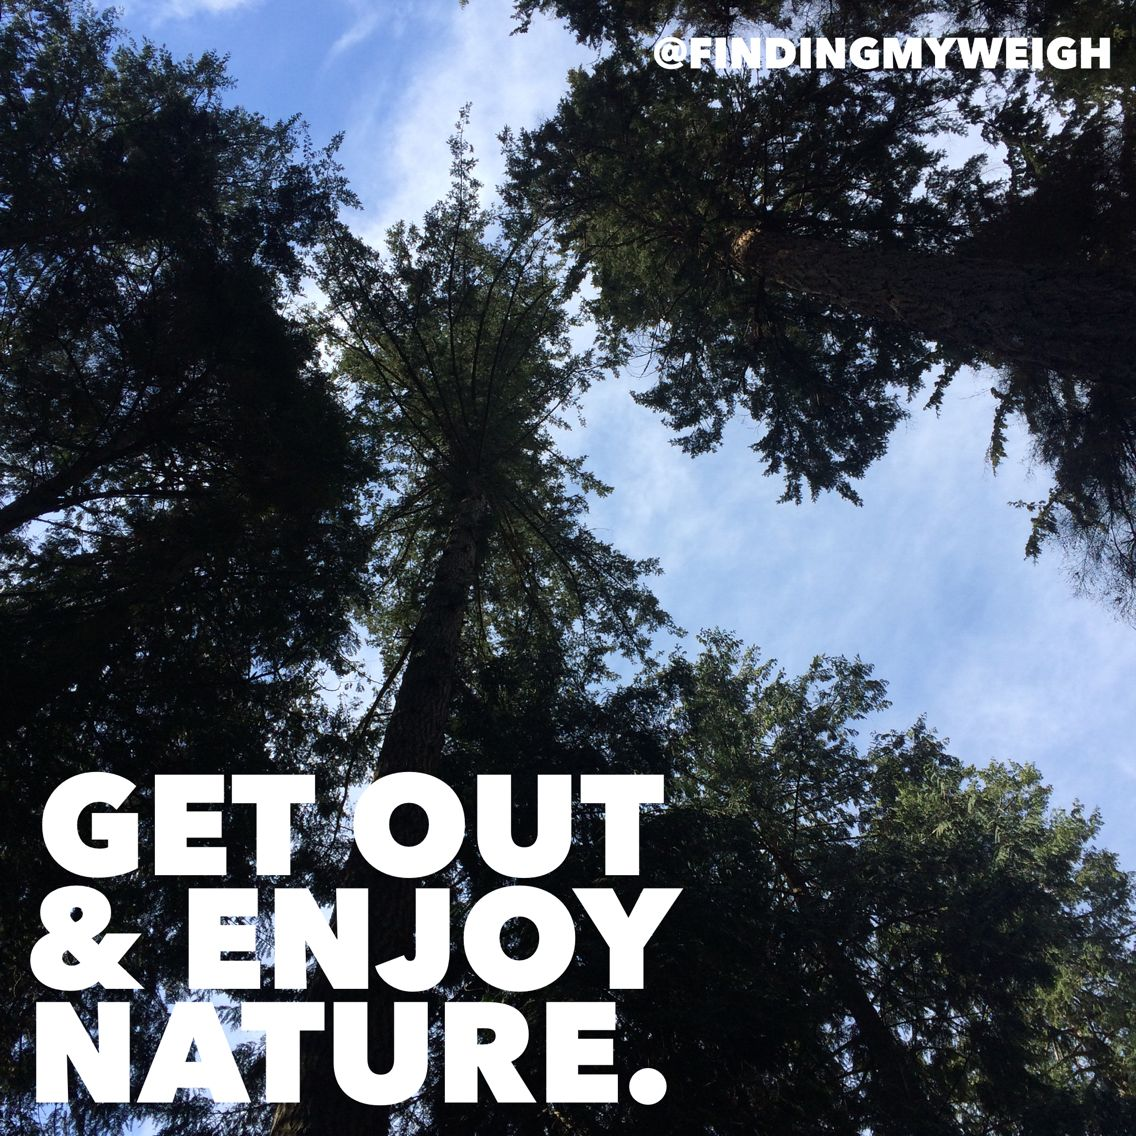 Get out and enjoy nature.